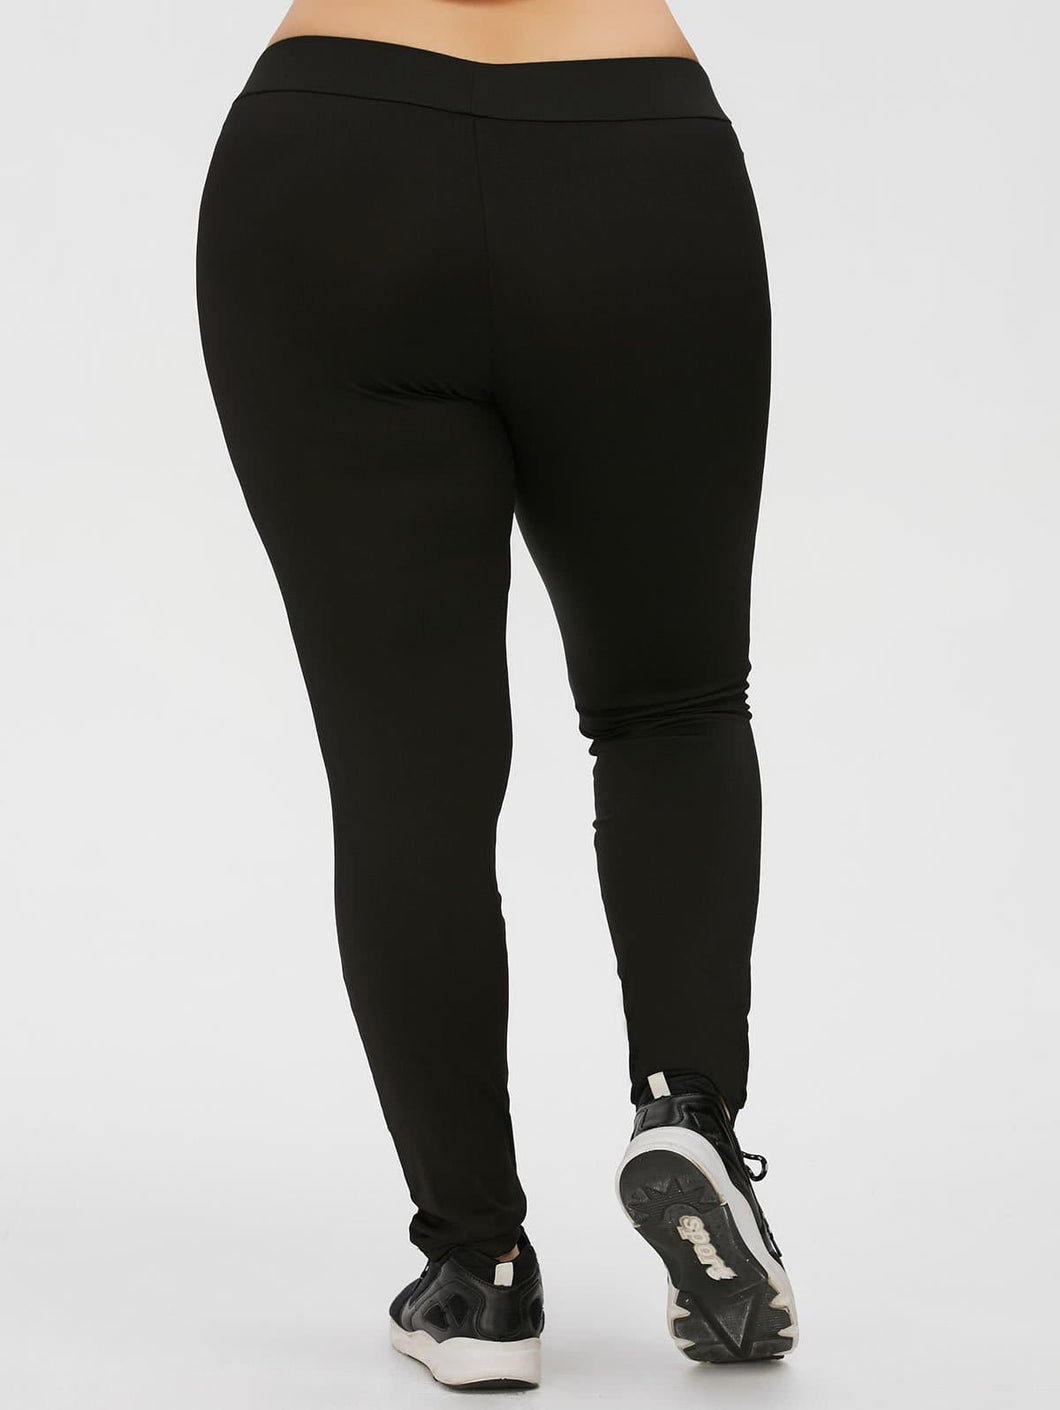 Plus Size Panel Leggings - Tips for Hips